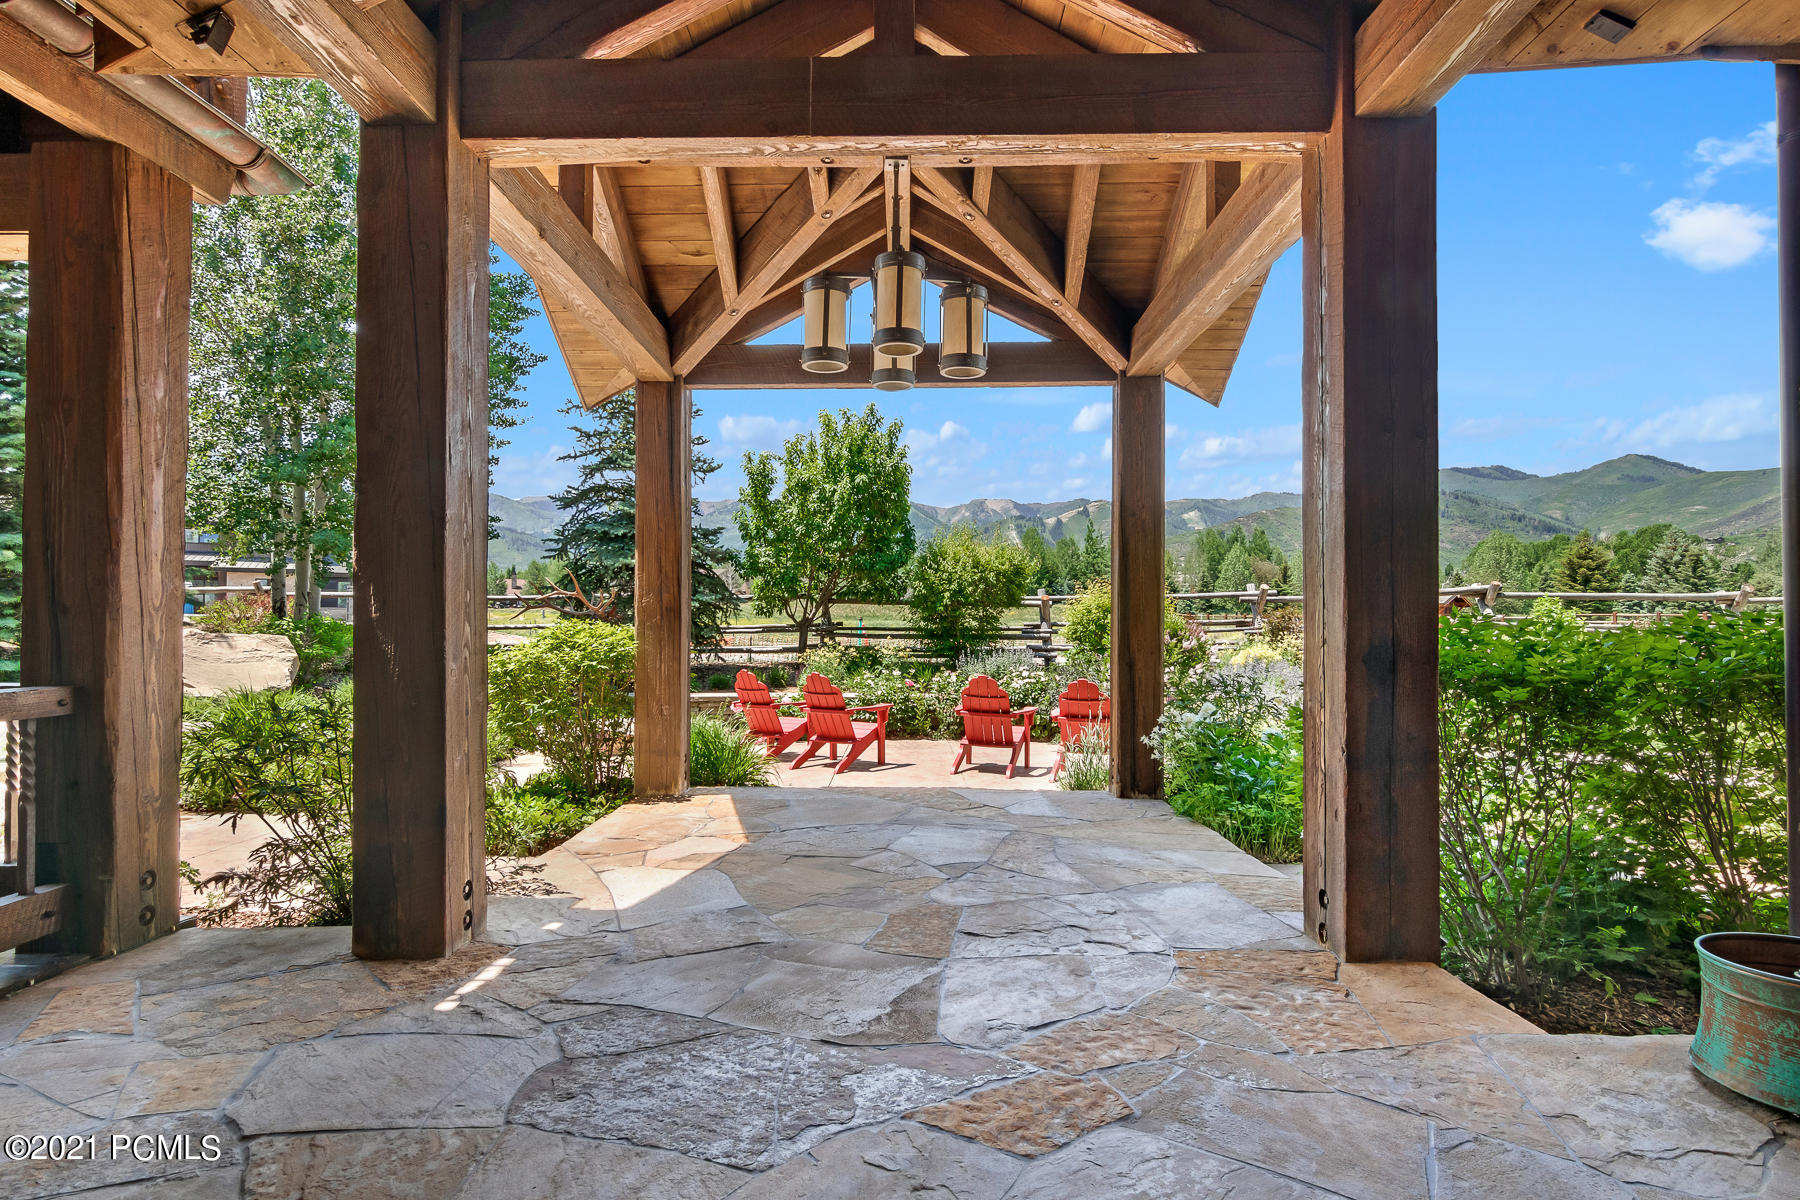 Park City Utah Legacy Home surrounded by vast open space and wide views of the Wasatch Mountains. Quiet. Private. Light. Sophisticated styling by Barclay Butera. Many indoor and outdoor gathering spaces: vaulted great room with pass through fireplace to formal dining; Entertainment Room with bar, pool, shuffle board, comfy TV area; Outdoor deck with chefs grill, sink, comfy seating, hot tub and fire pit; Breakfast room and fireplace room surround a large gourmet kitchen featuring Wolf and SubZero doubled appliances. Unique features include a historical trestle wood, glass walkway, 3 balconies on the second level, stunning water features and grounds, a pergola with custom crafted log picnic table. 5 Car garage with 16' insulated door. Plus a 16' rec vehicle garage. 2 stable horse barn. Gated private driveway. All connected by a radiant heated courtyard. 5 bedrooms. 9 baths. 10 fireplaces. Minutes to Park City, Salt Lake City and Airports.